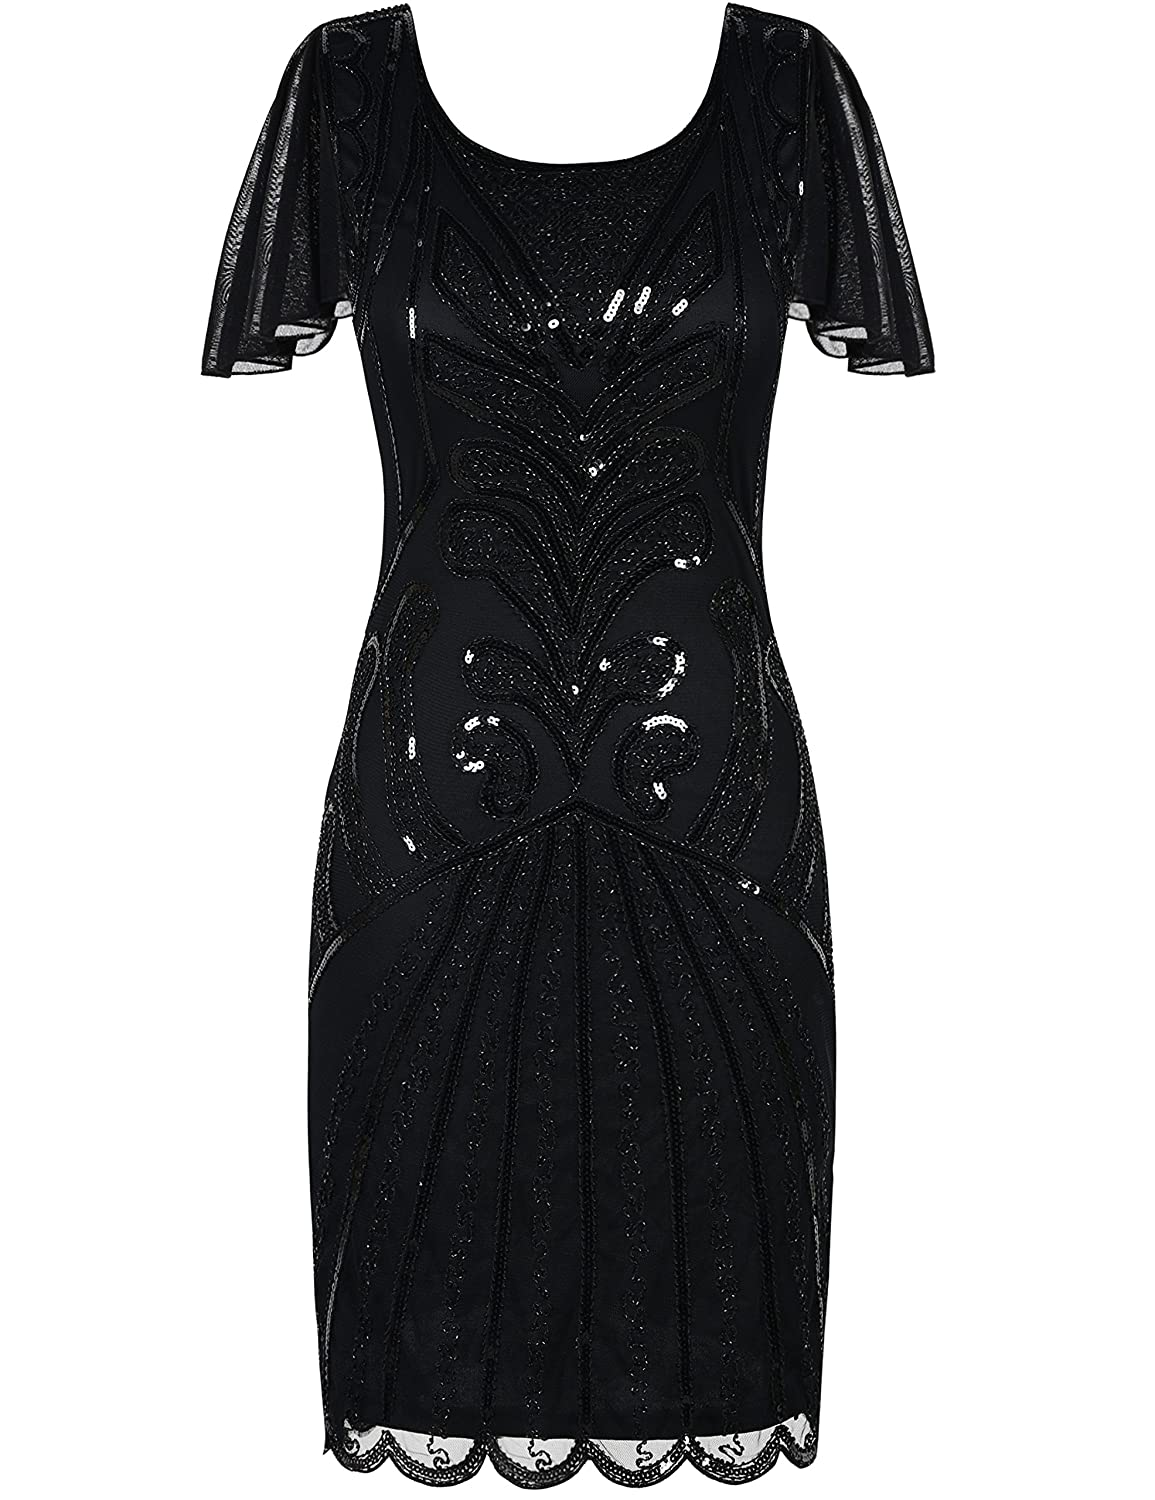 f02ce70f For those who adore vintage dresses that stand out from the crowd, you\'ll  love the artistic appeal of this flapper dress. This art deco flapper dress  ...